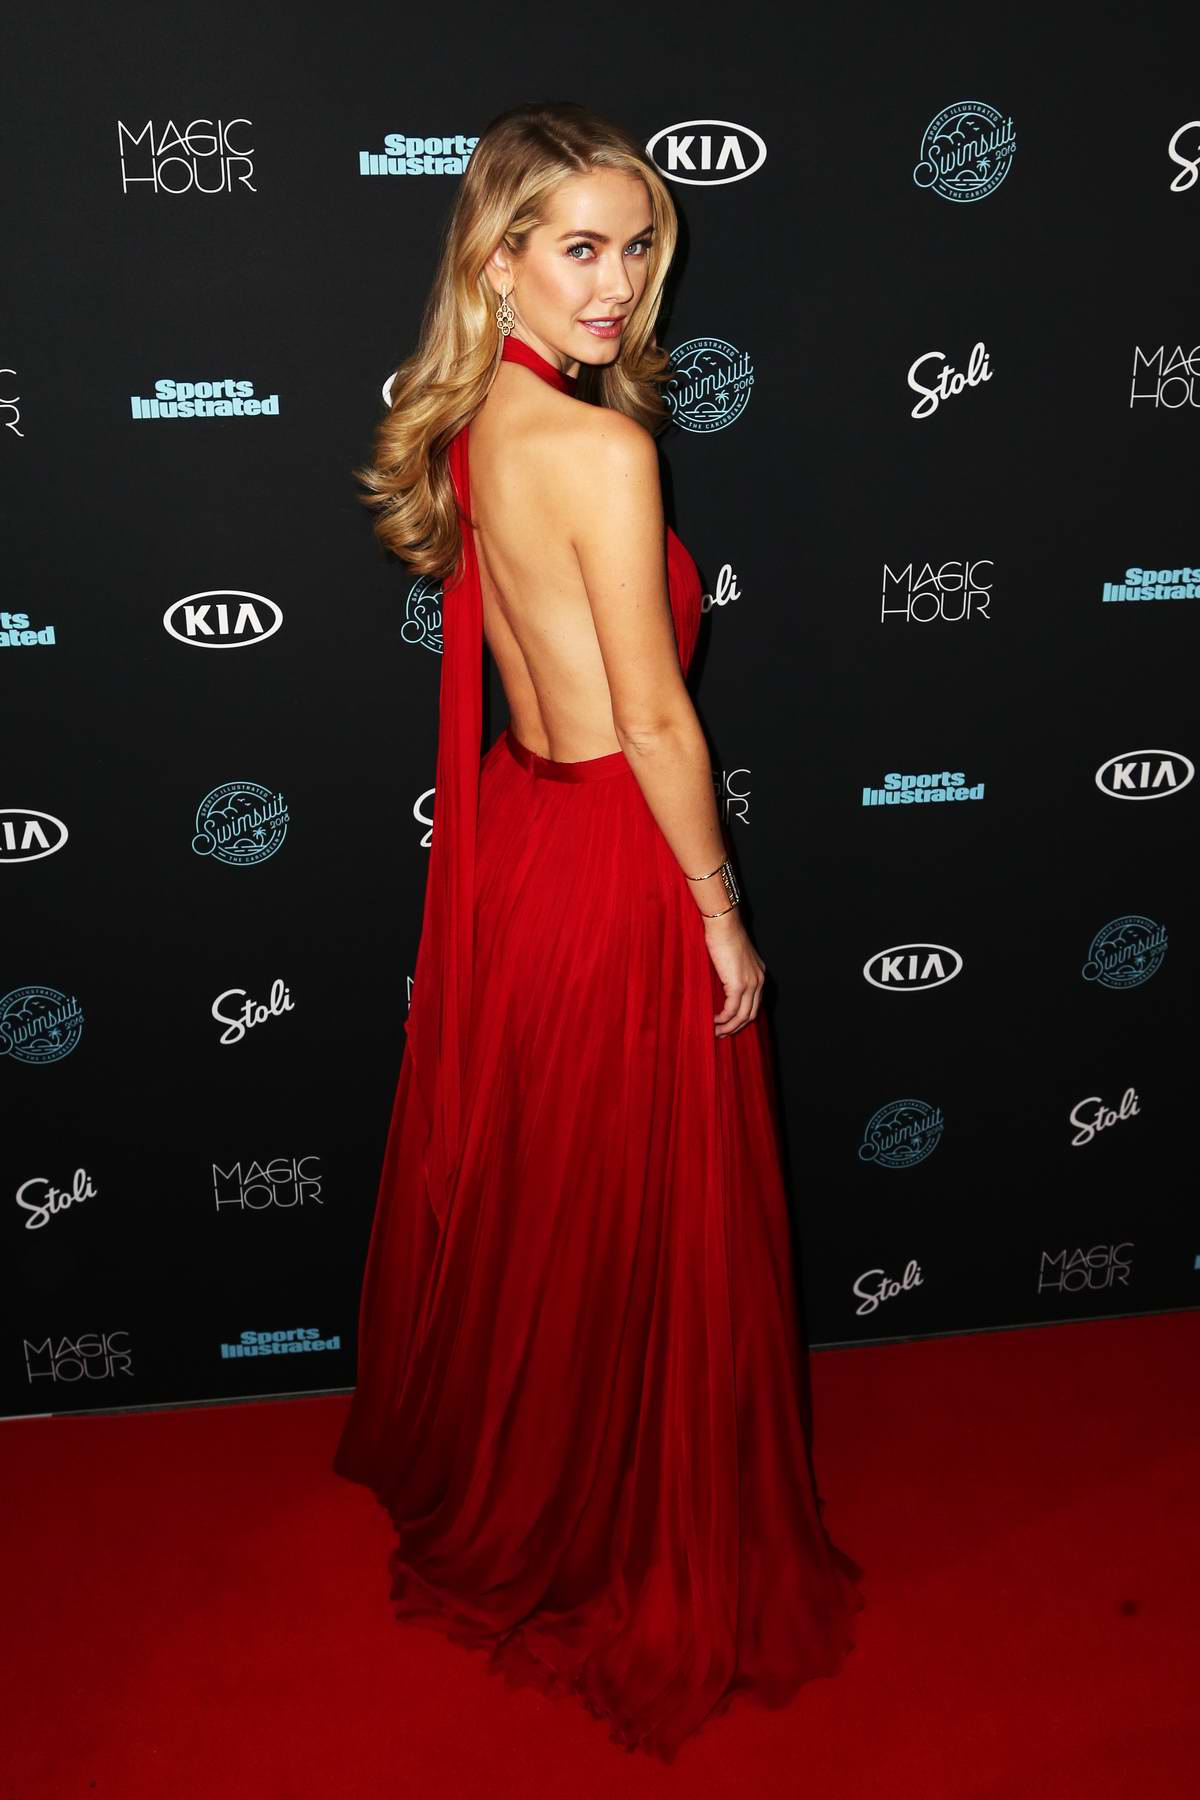 Olivia Jordan attends Sports Illustrated Swimsuit 2018 Launch Event in New York City